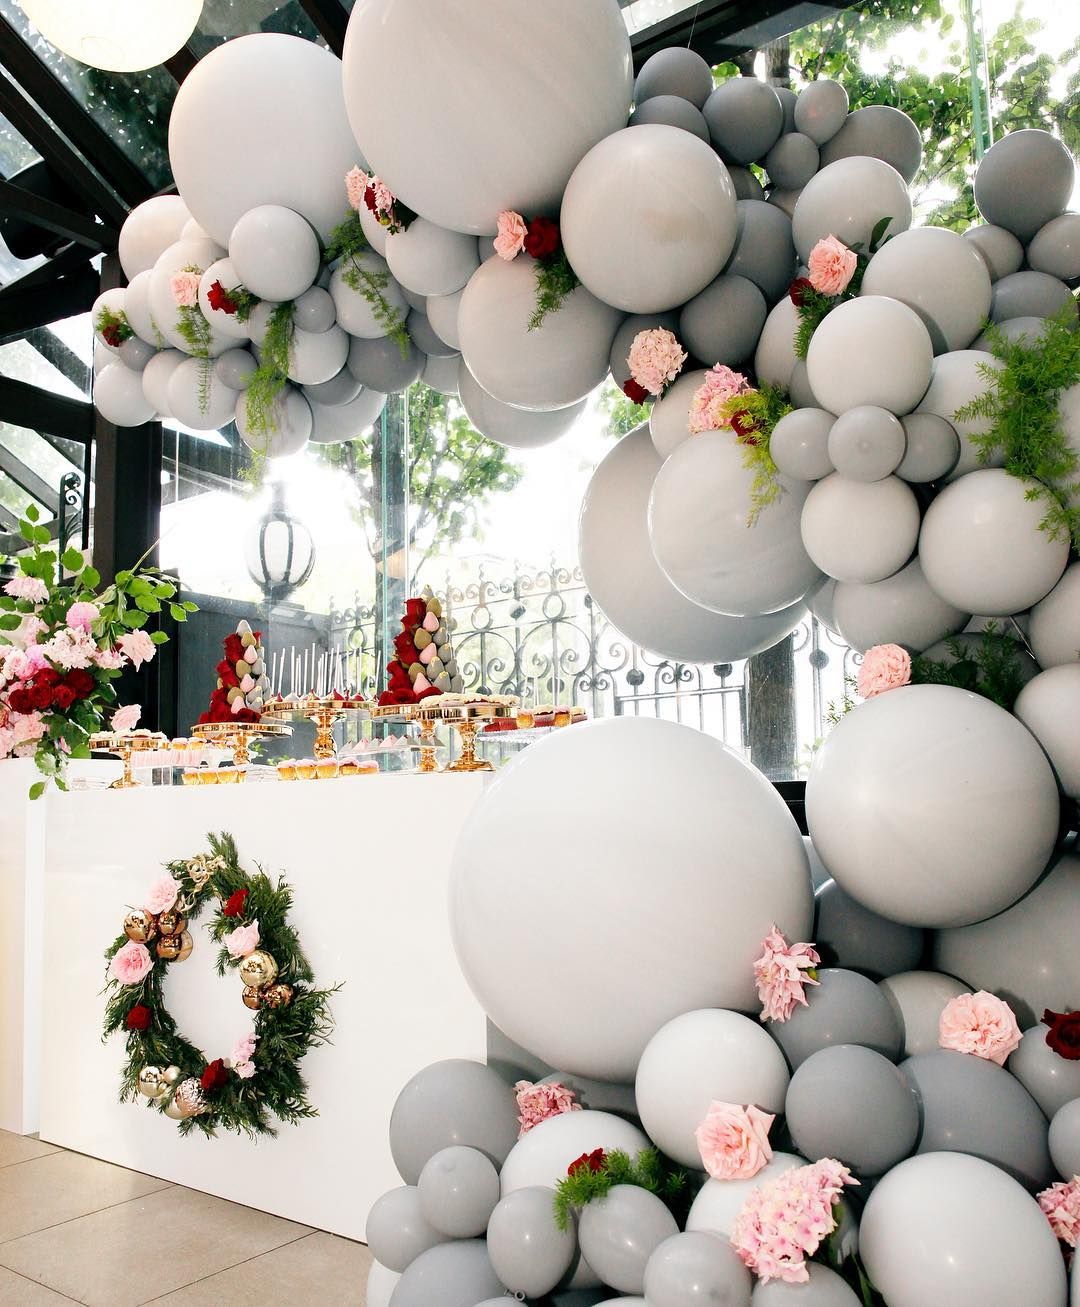 Tendencia en decoracion de eventos 2018